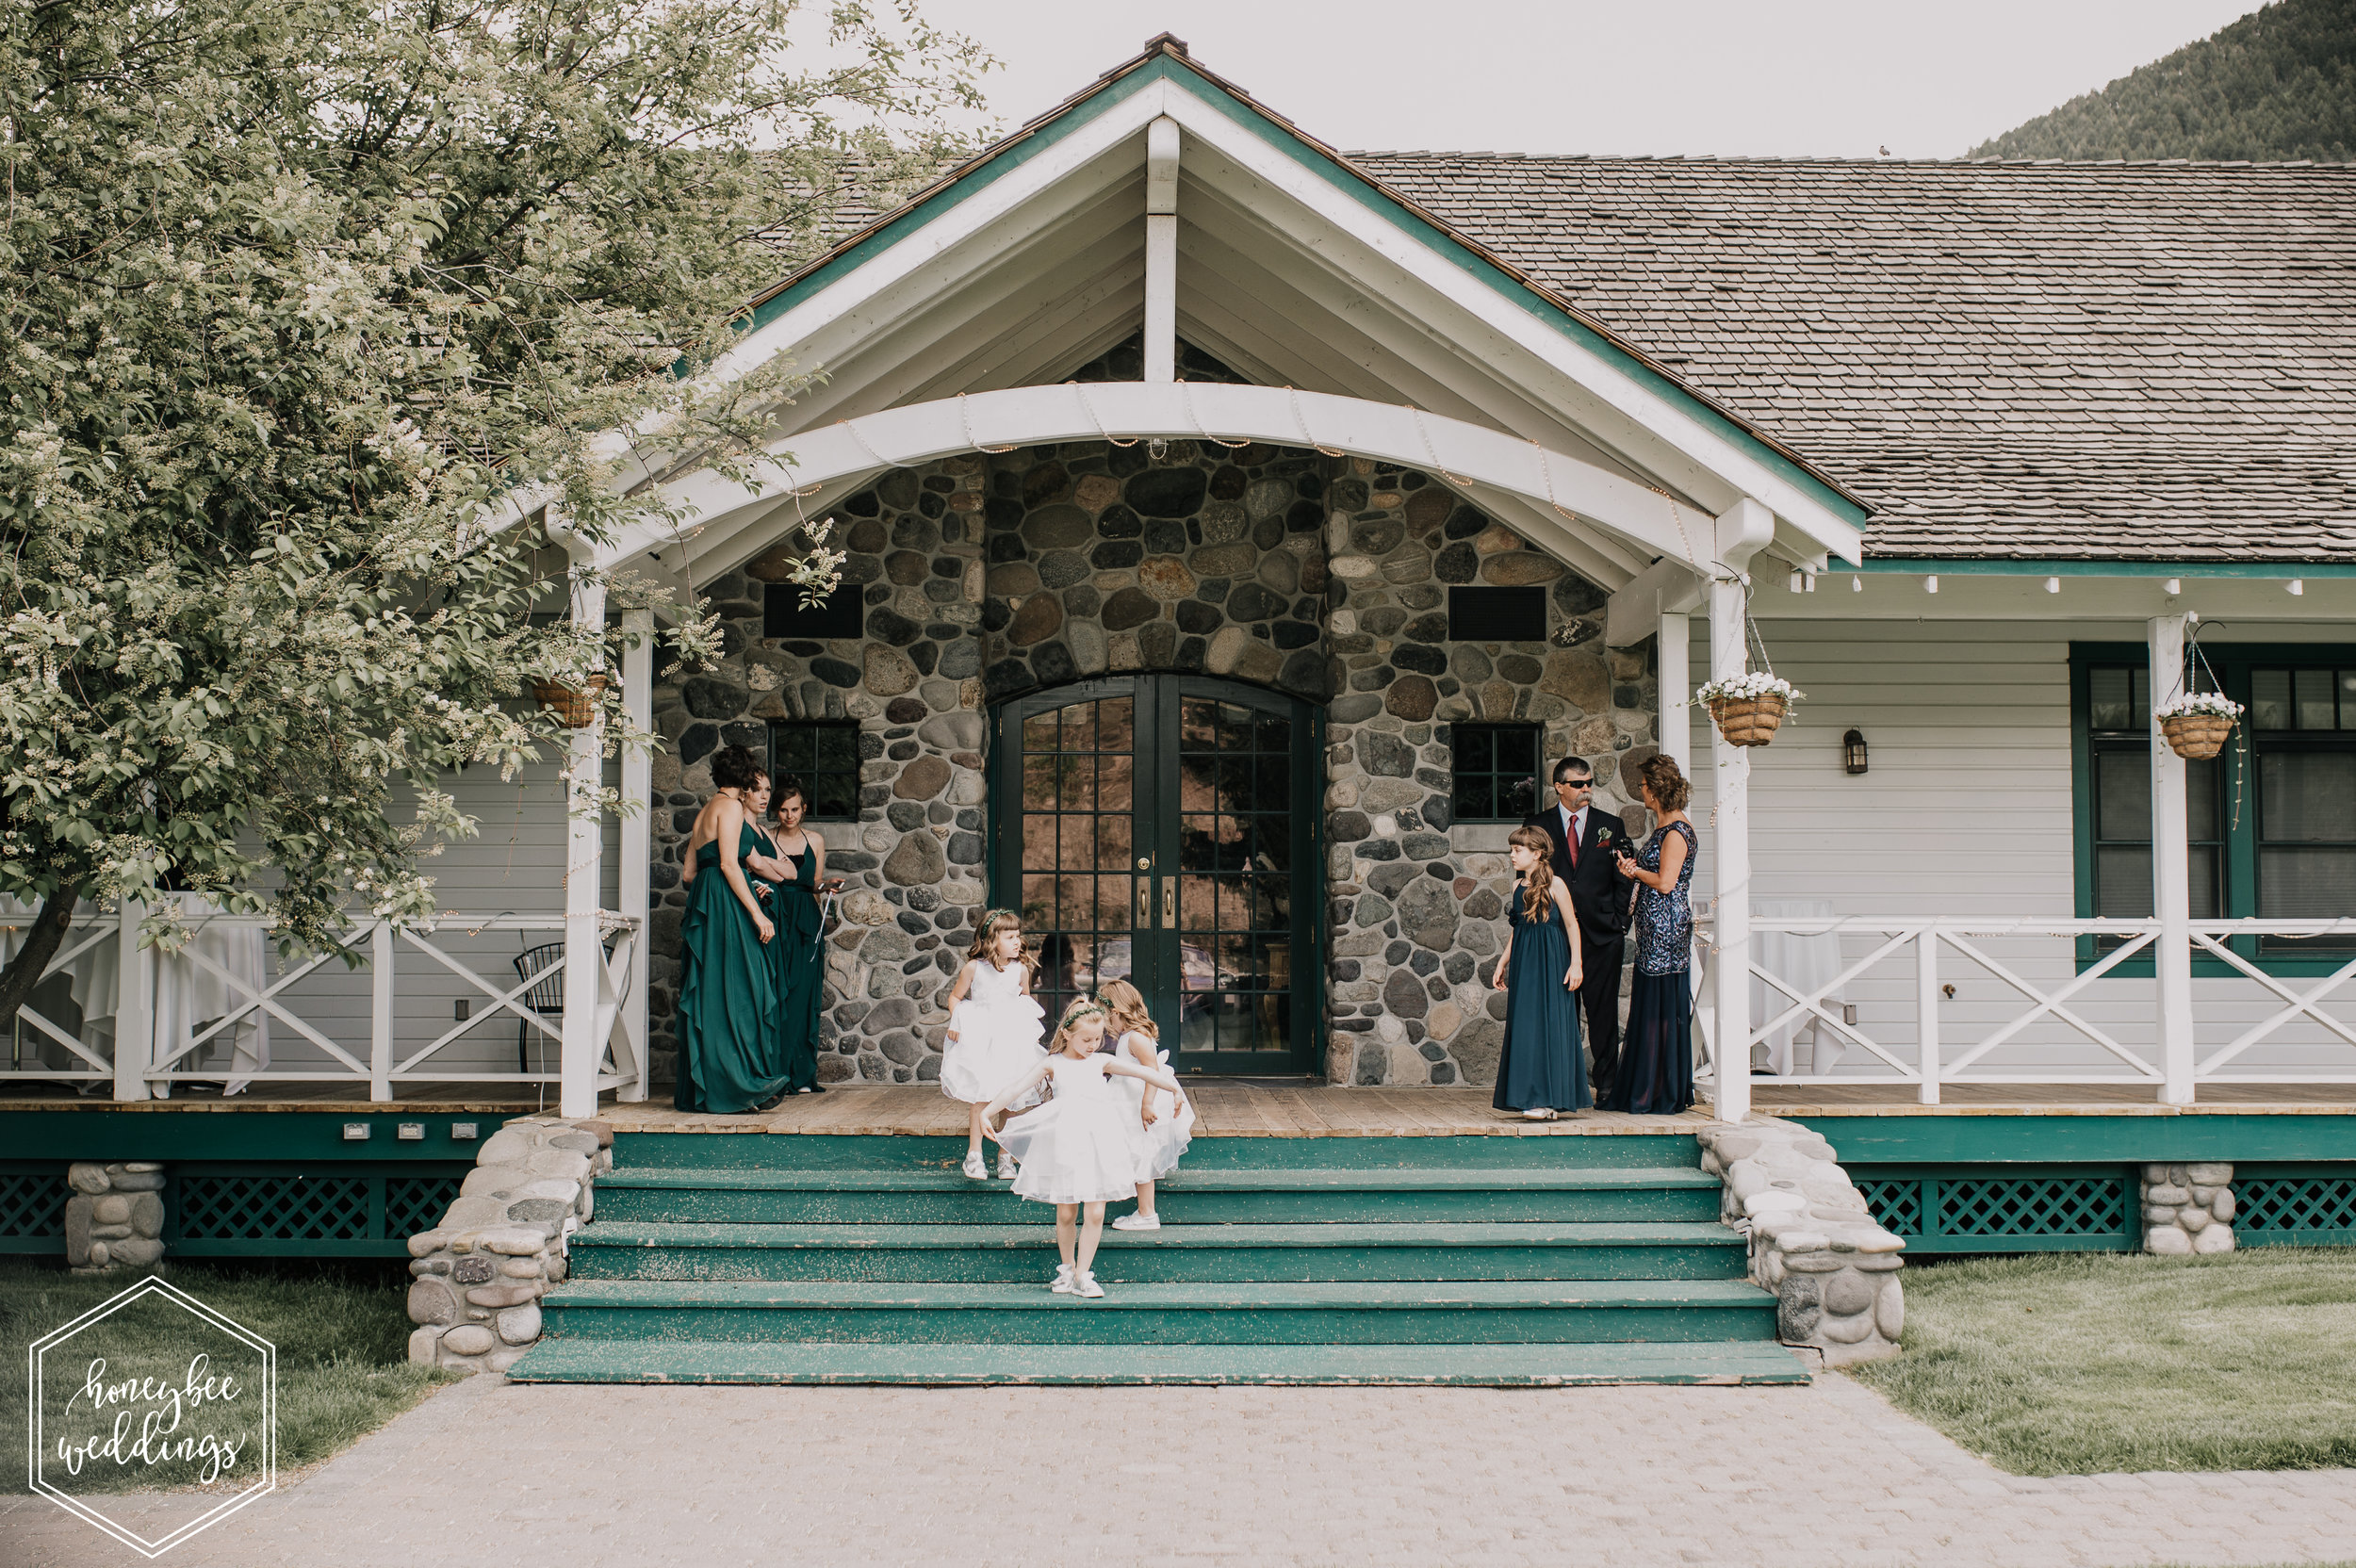 167 Chico Hotsprings Wedding_Bowdino 2018-2924-2.jpg